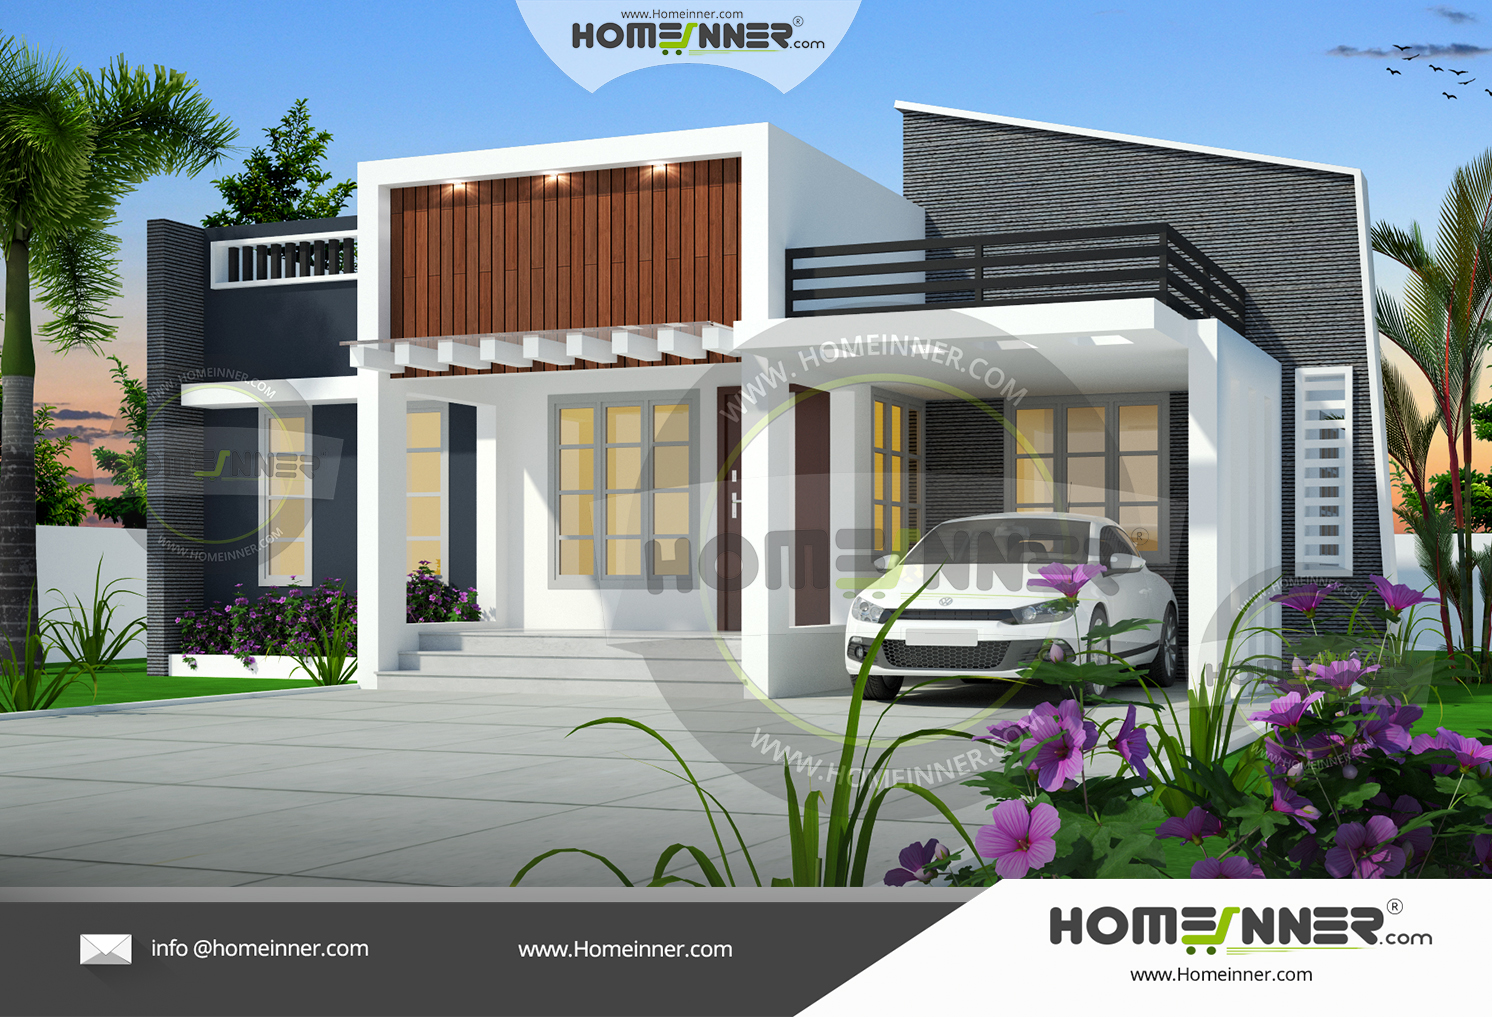 South Tripura 10 Lakh small house architecture design